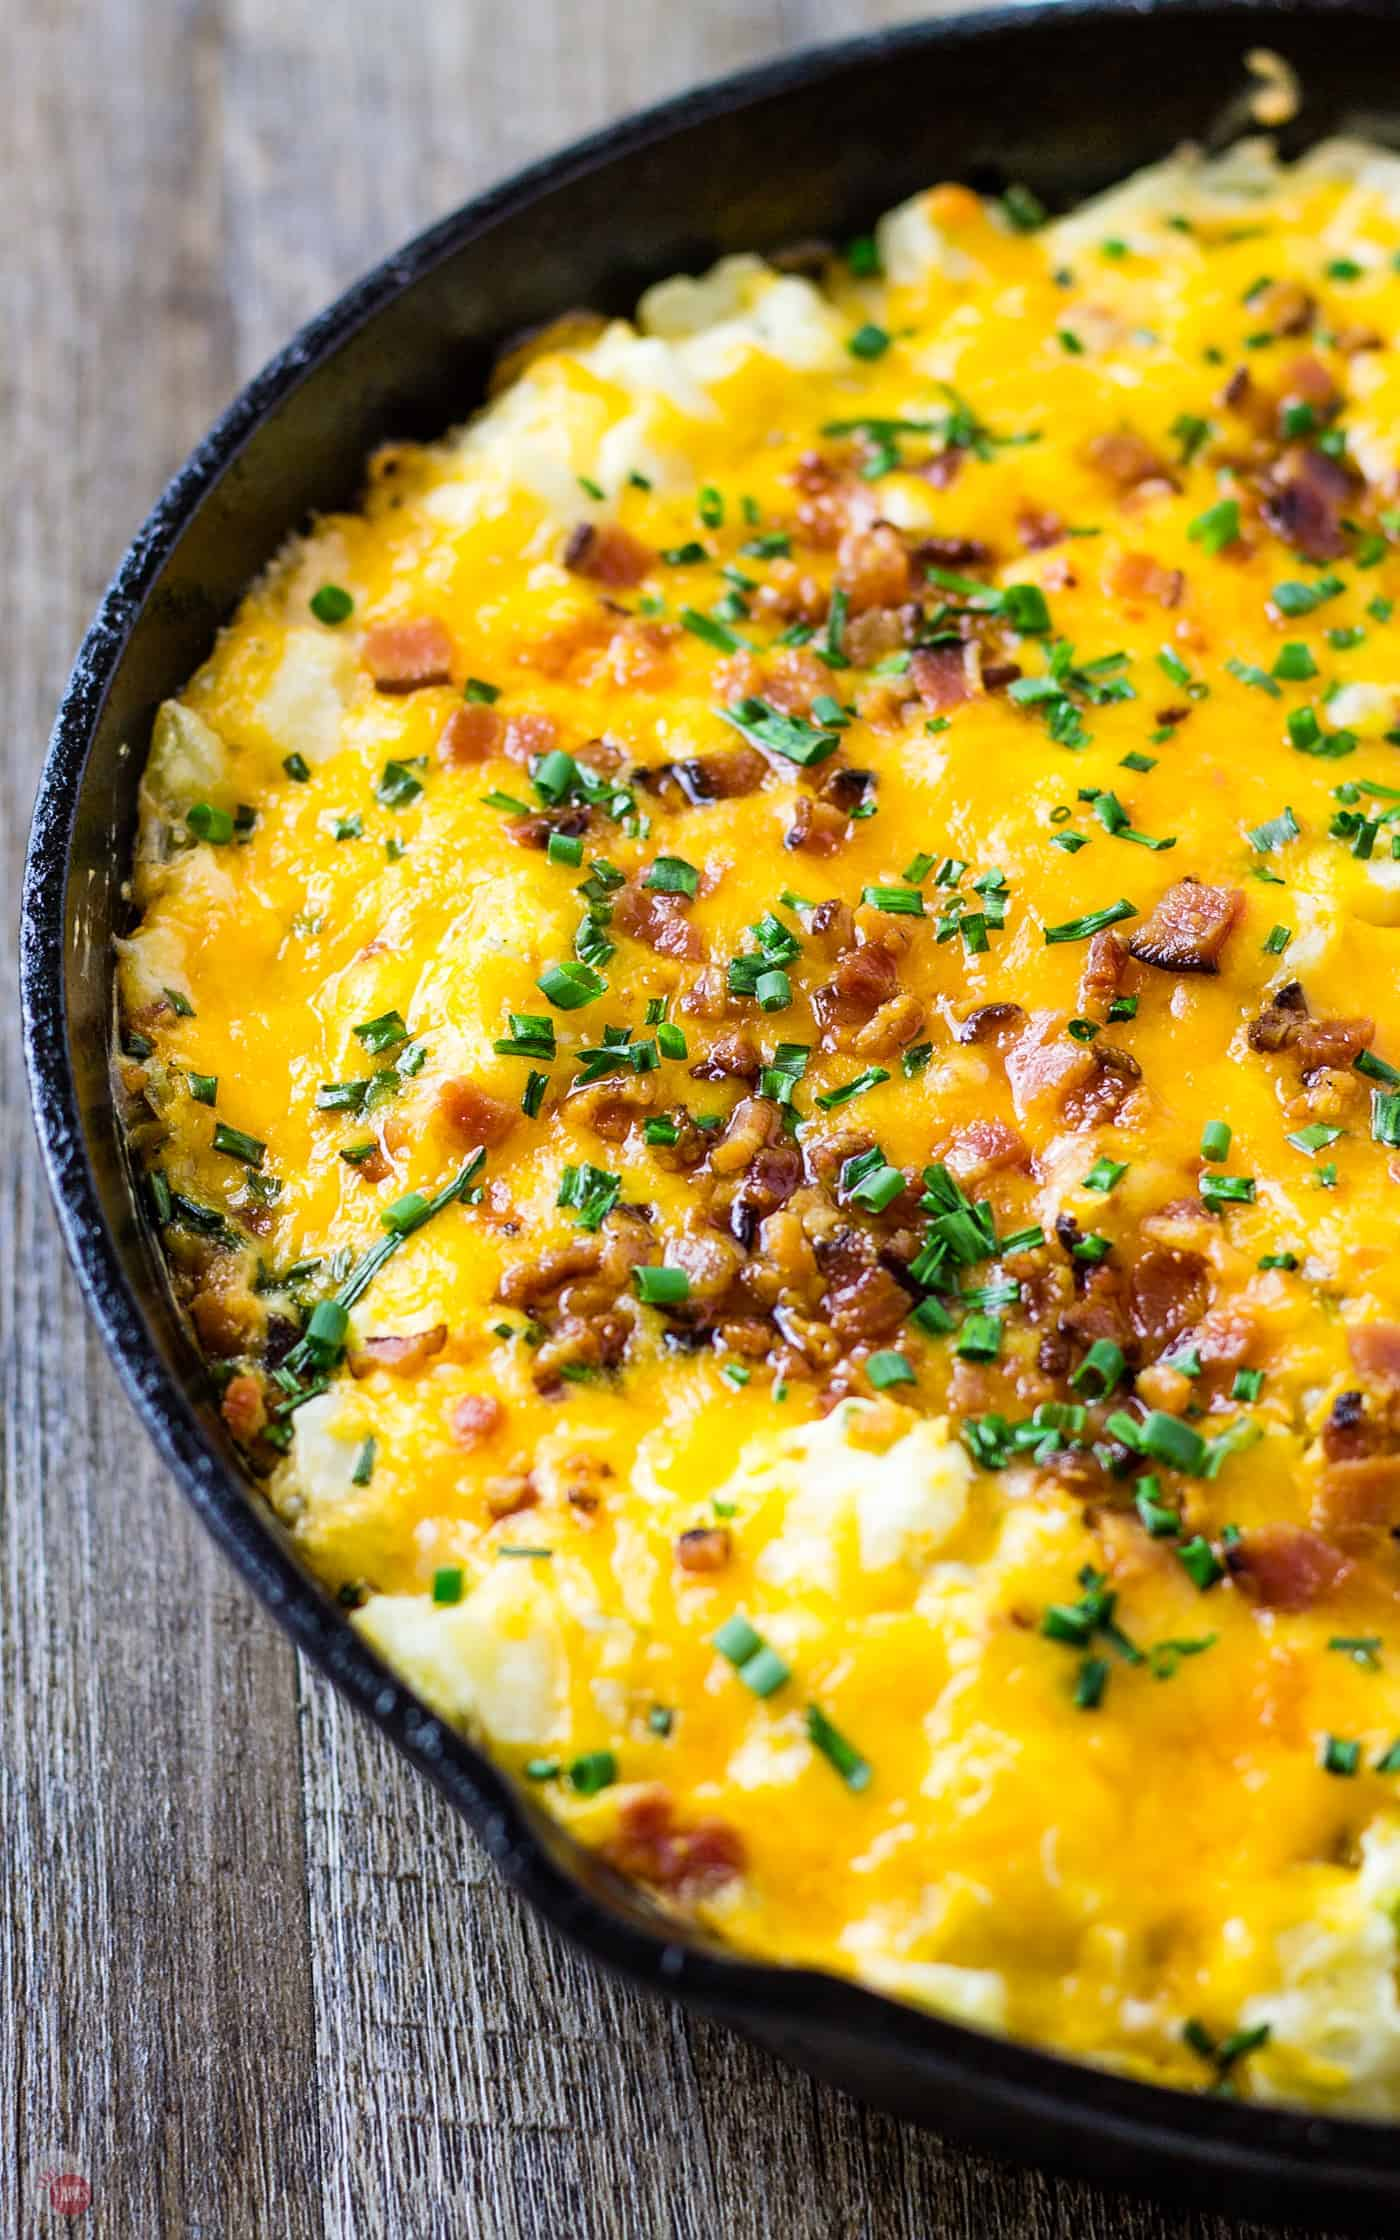 Loaded Potato Skin Dip all together in a skillet sitting on a wood table